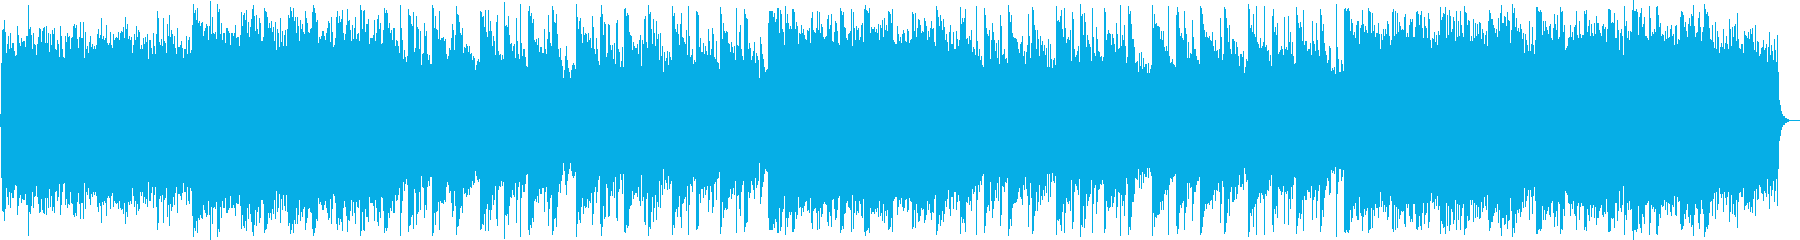 Strict Japanese music's reproduced waveform